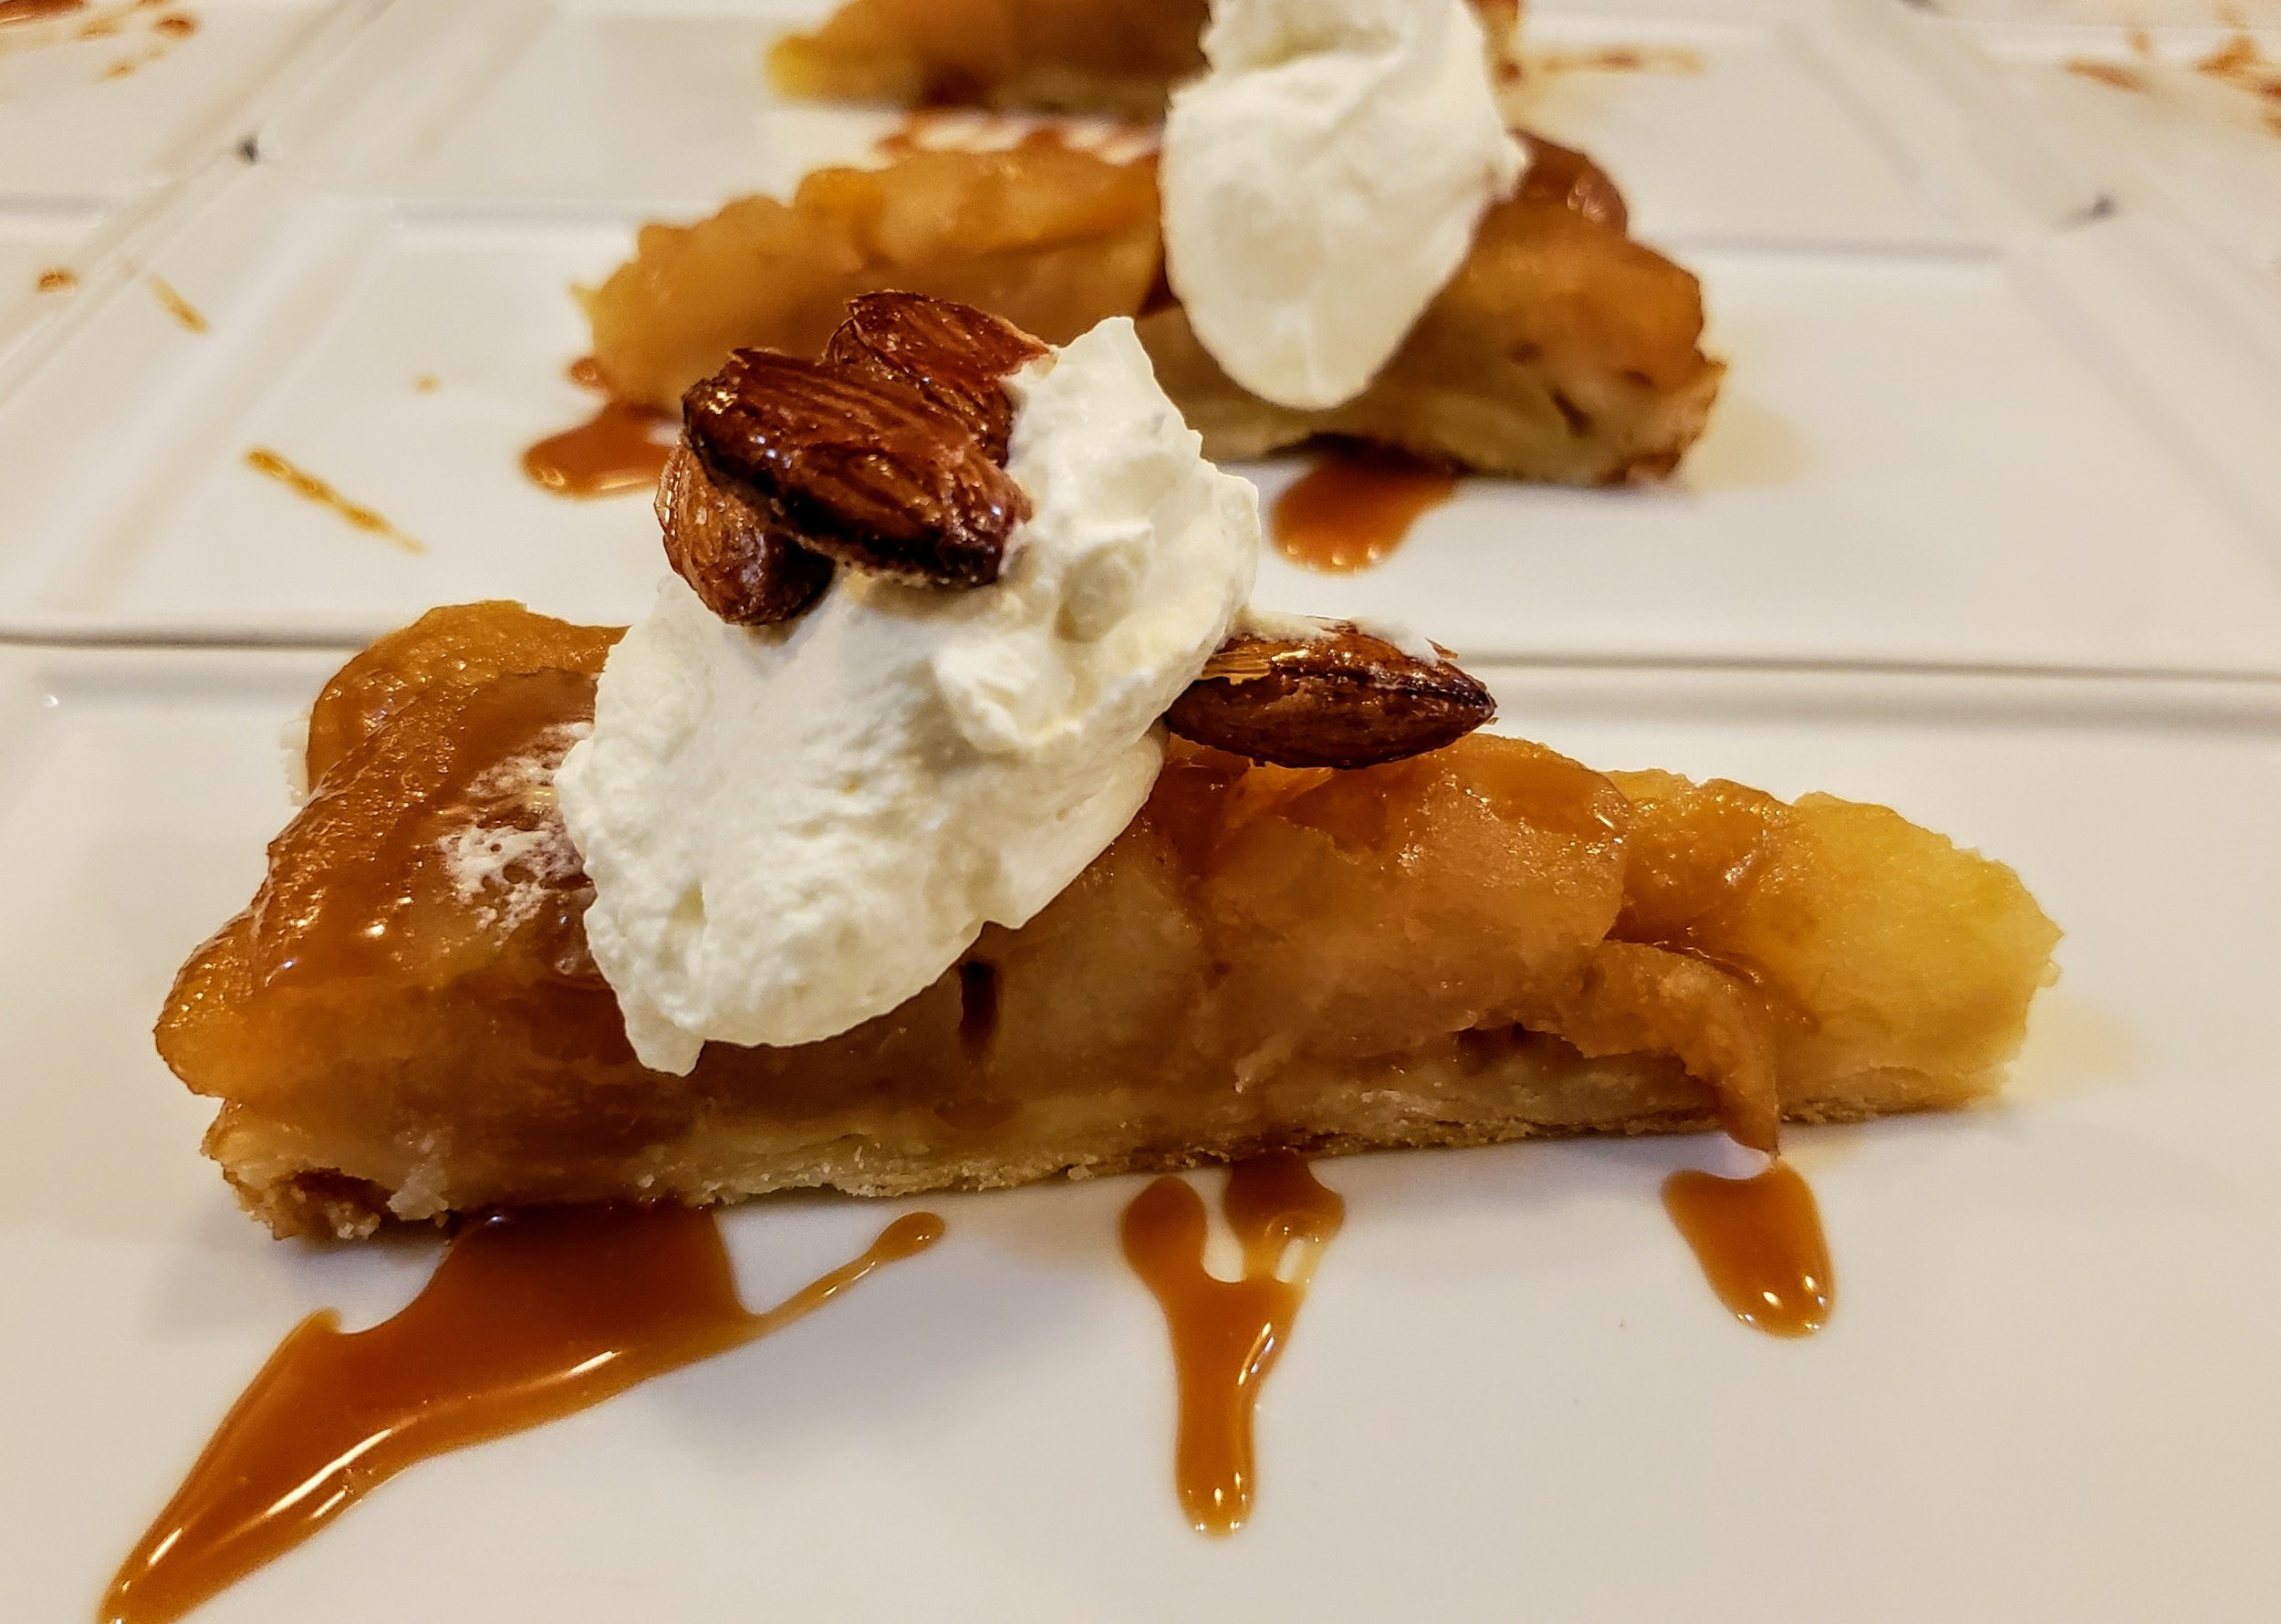 Apple Tartine  Caramel Sauce, Candied Almonds, Whipped Cream